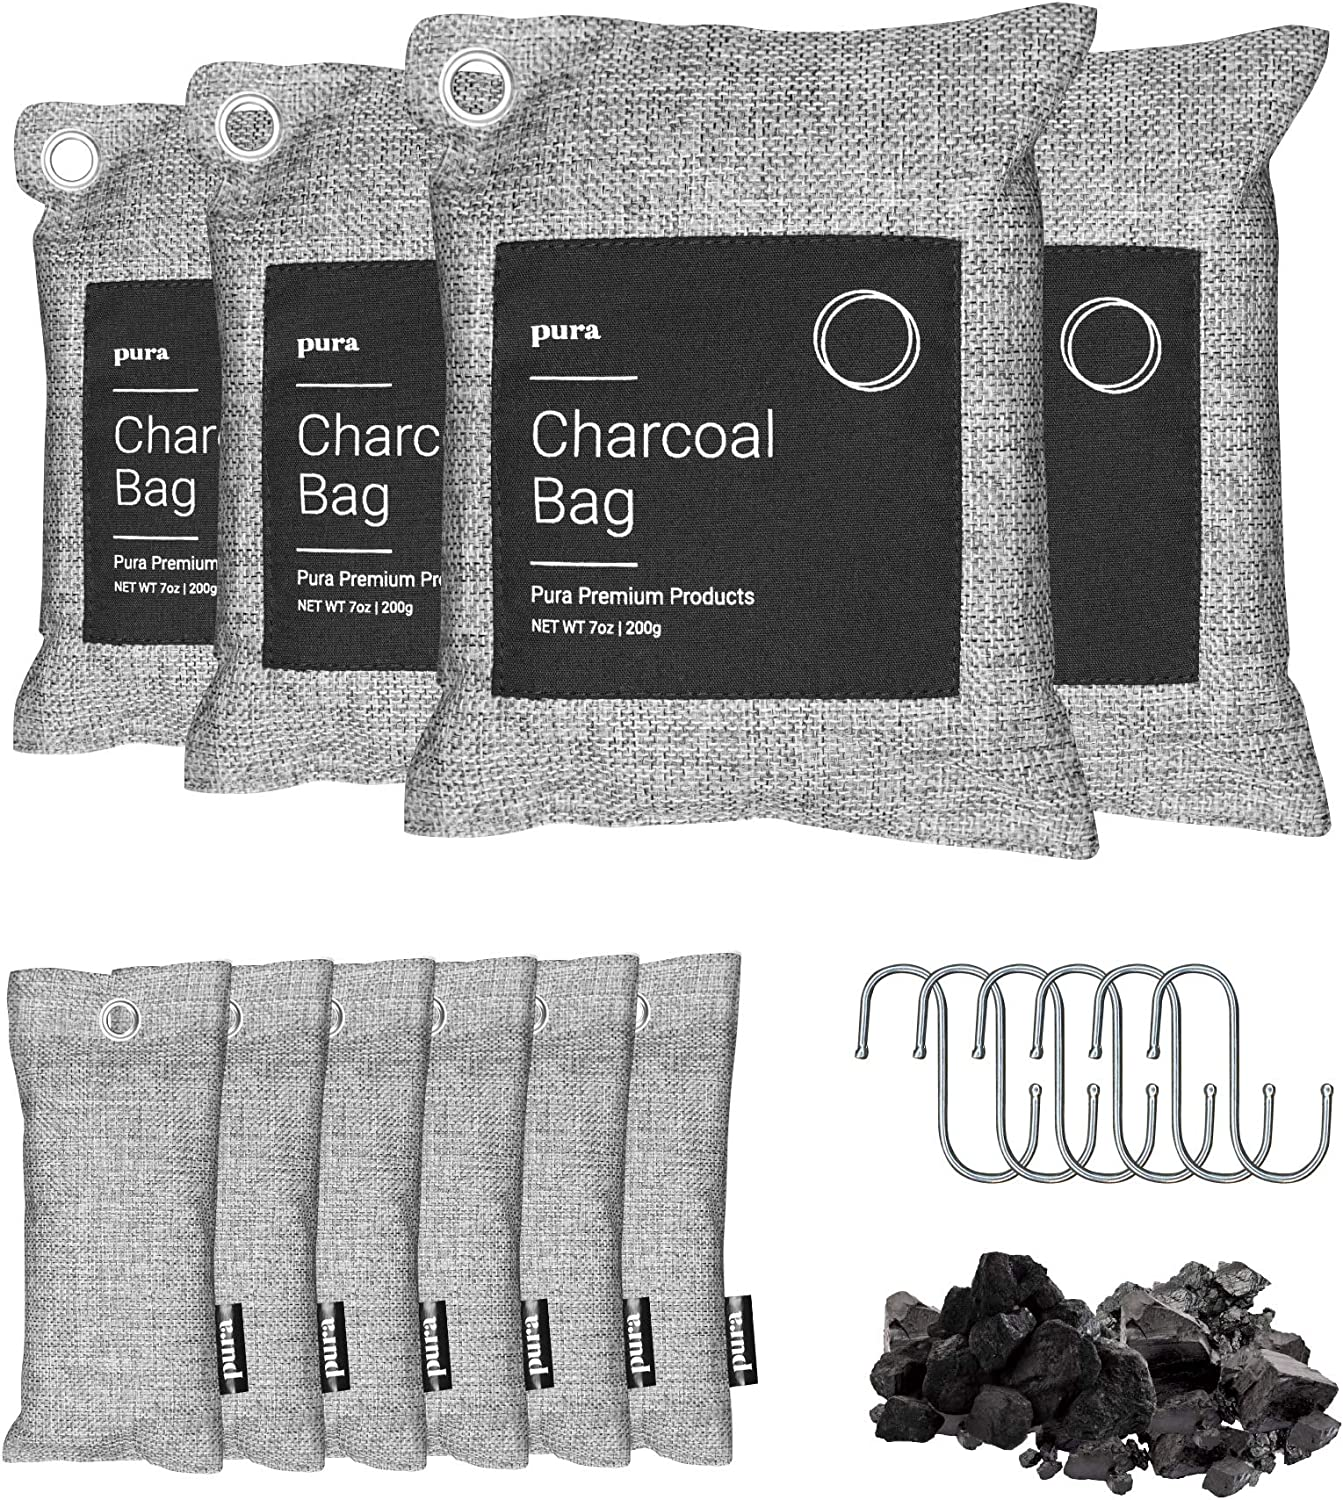 Pura Premium Activated Charcoal Bags Odor Absorber(16 Piece Set: 4x200g, 6x75g & 6 hooks), Powerful Bamboo Charcoal Air Purifying Bag - Shoe Deodorizer, Car Deodorizer, Charcoal Odor Absorber for Pets